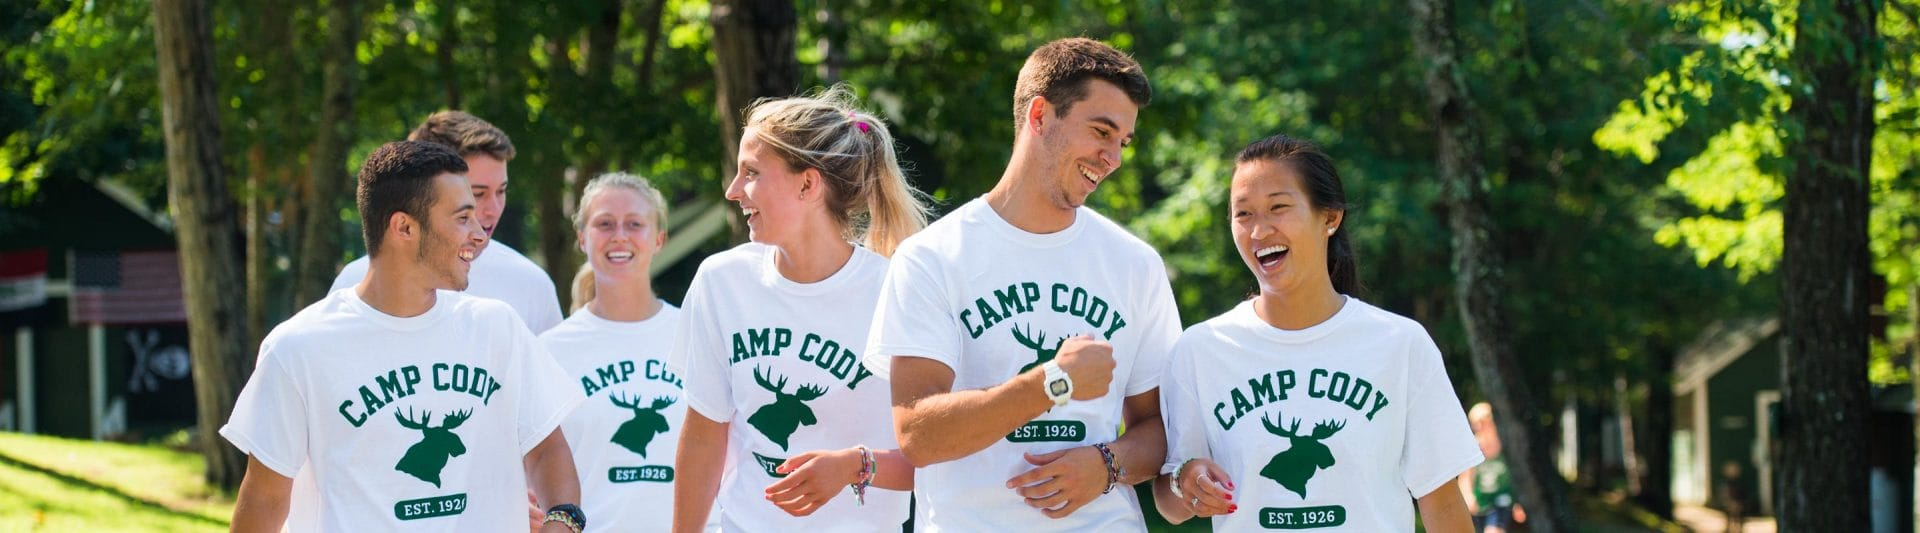 a group of counselors walking together and smiling